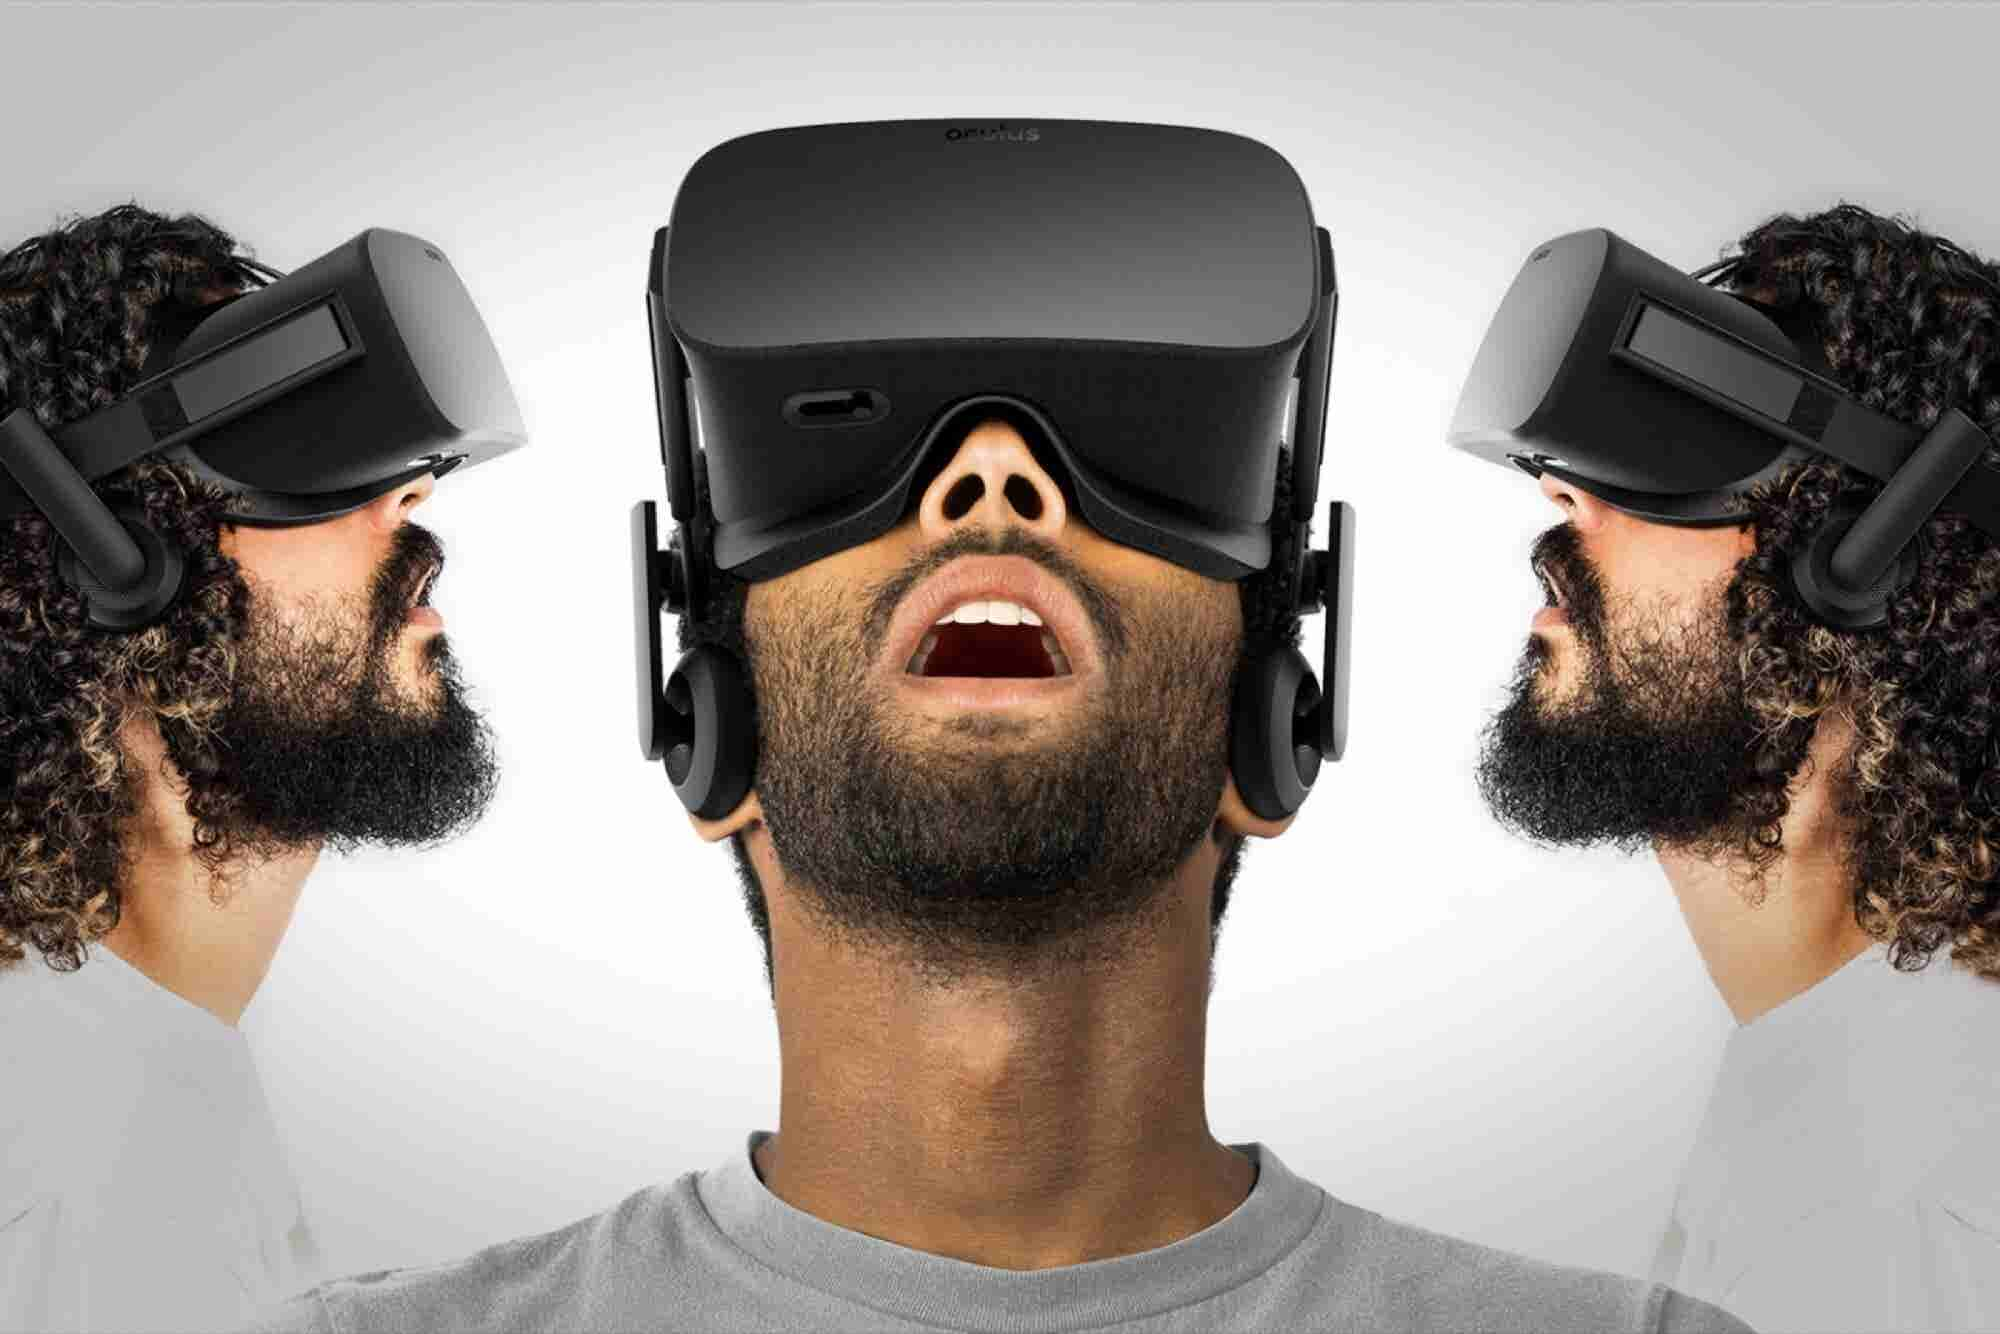 If You're Patient, You Can Now Pre-Order the Oculus Rift for $599